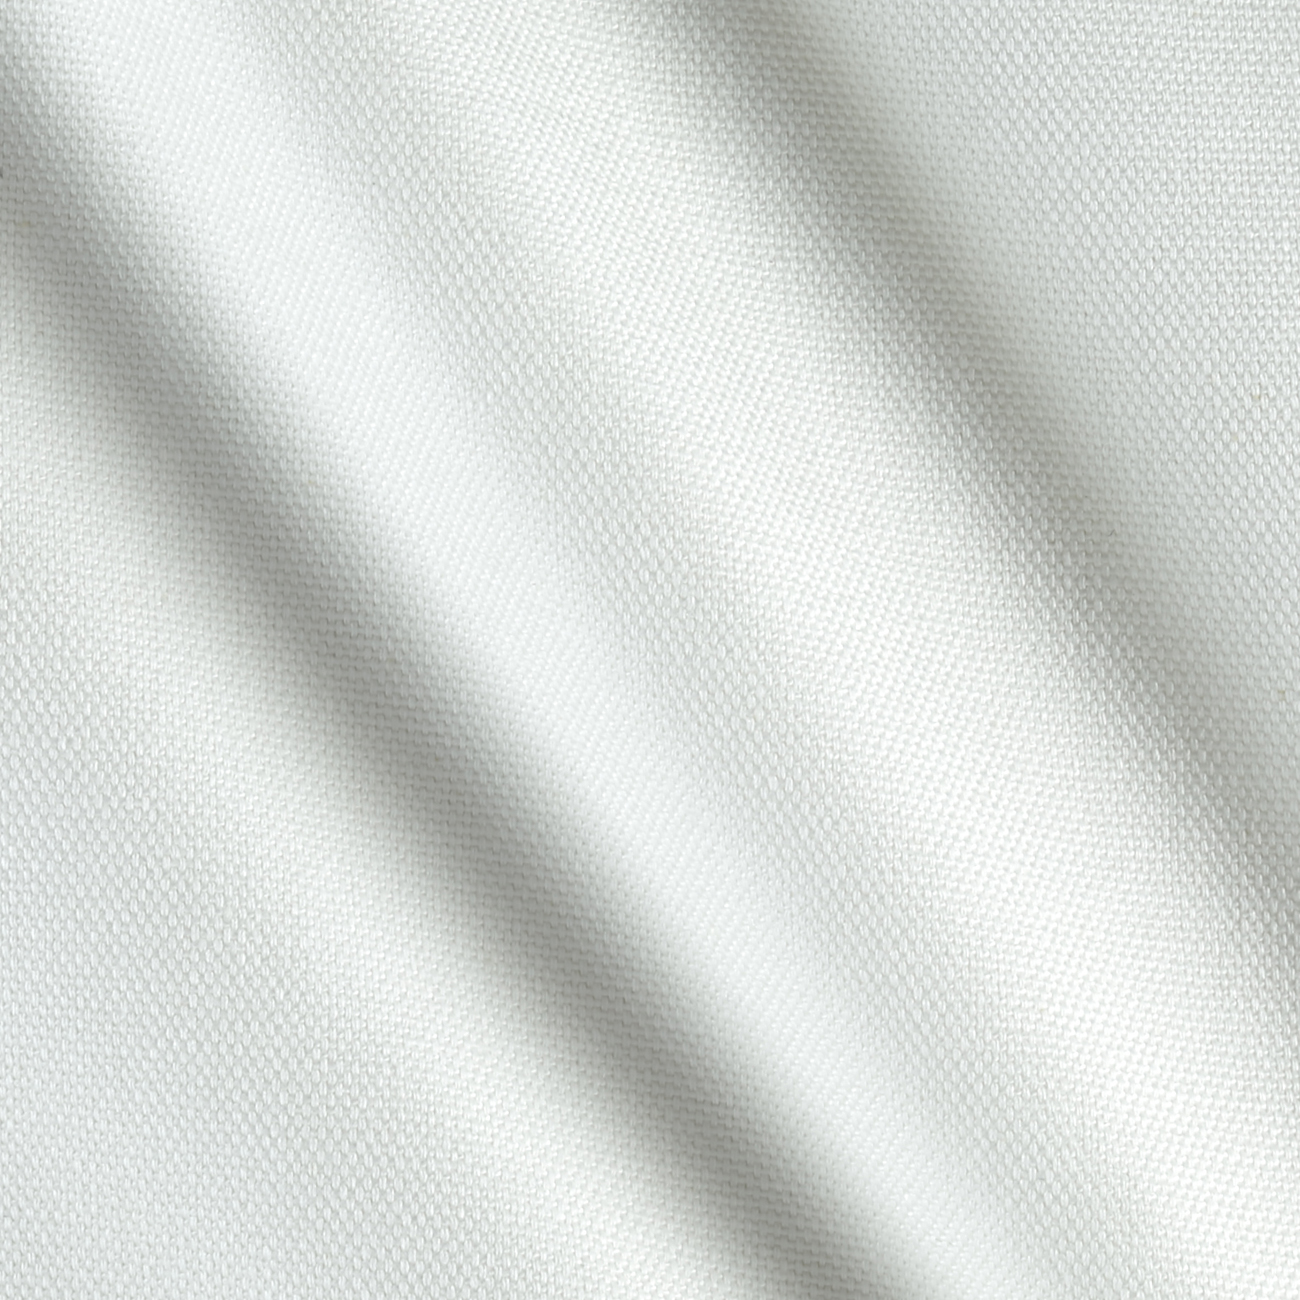 Kaufman American Made 7oz Canvas White Fabric by Kaufman in USA